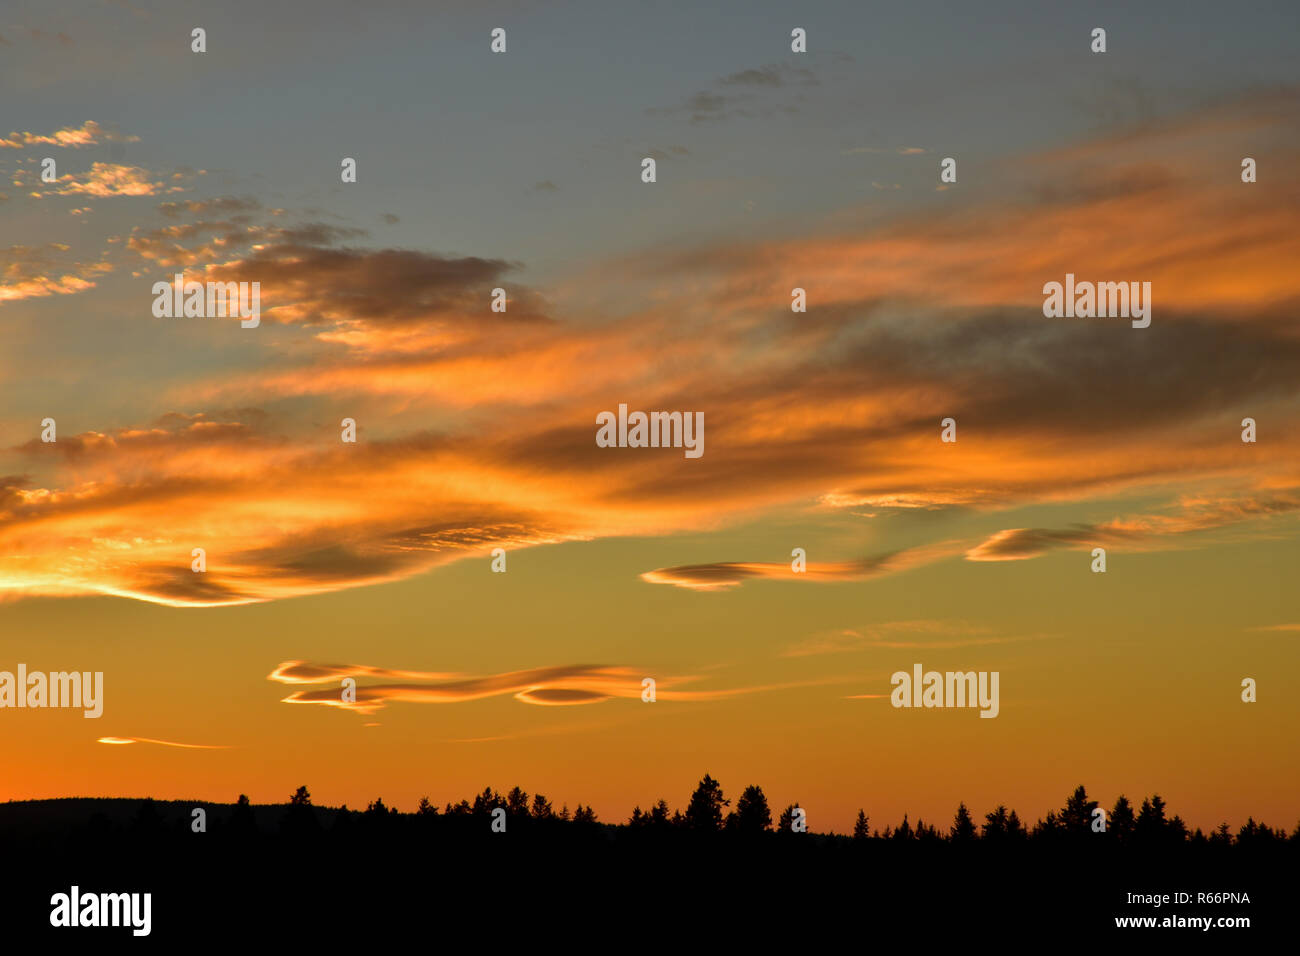 Stunning Sunset - Stock Image